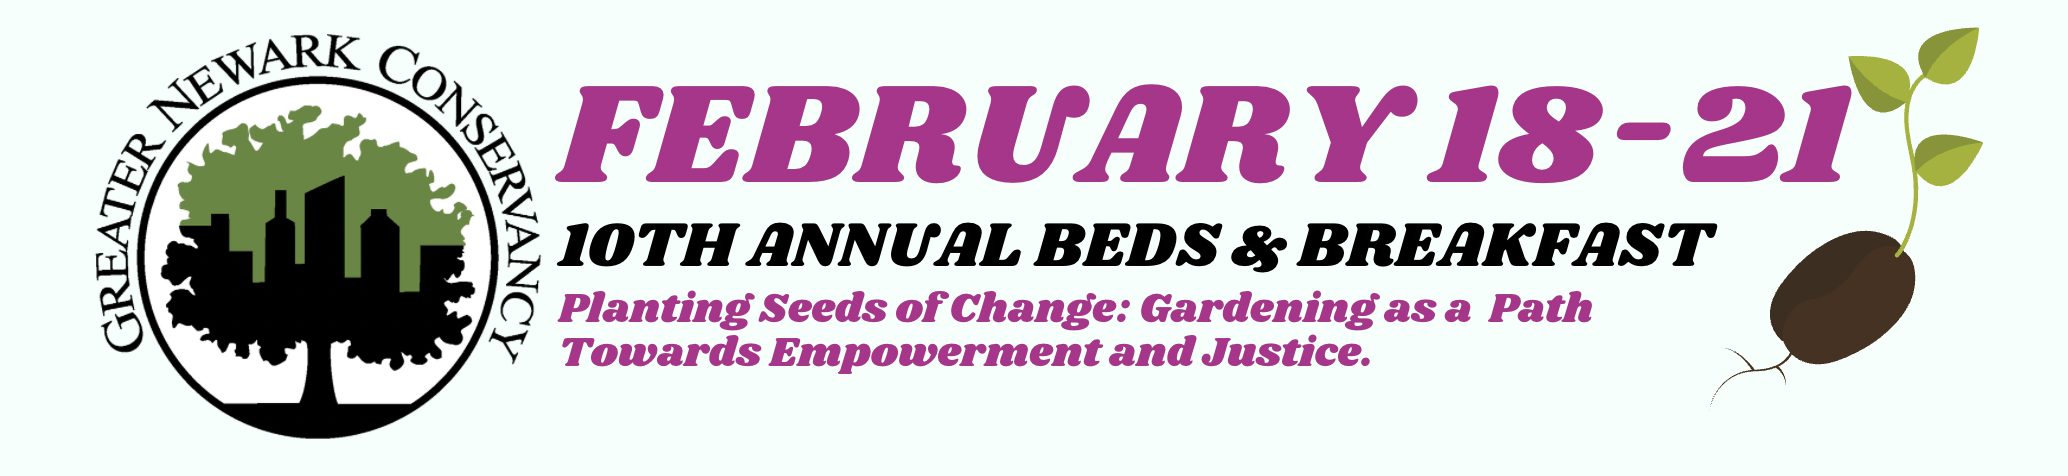 10th Annual Beds & Breakfasts